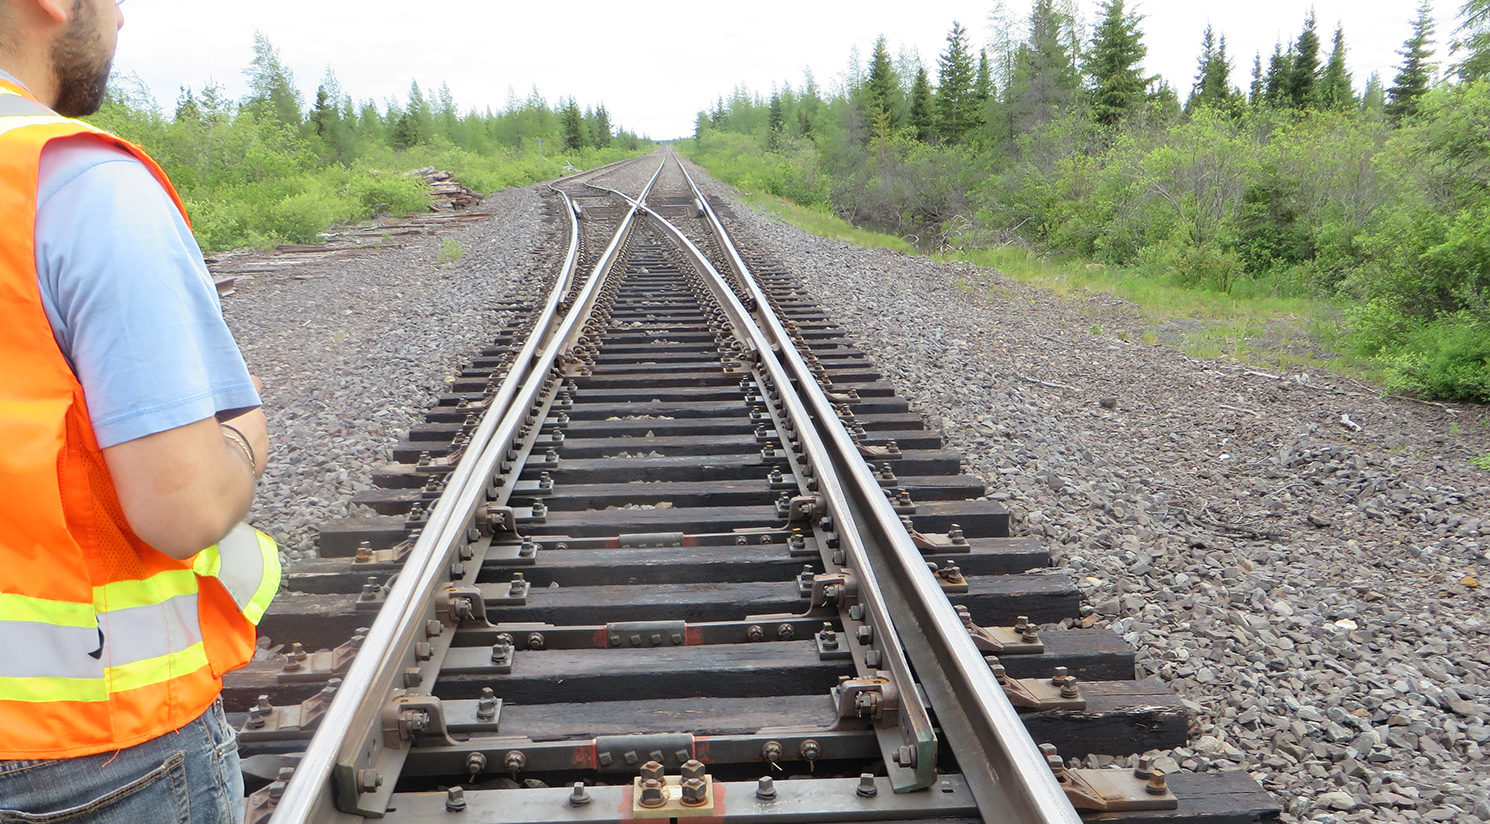 Technical Study of the Tshiuetin Railway